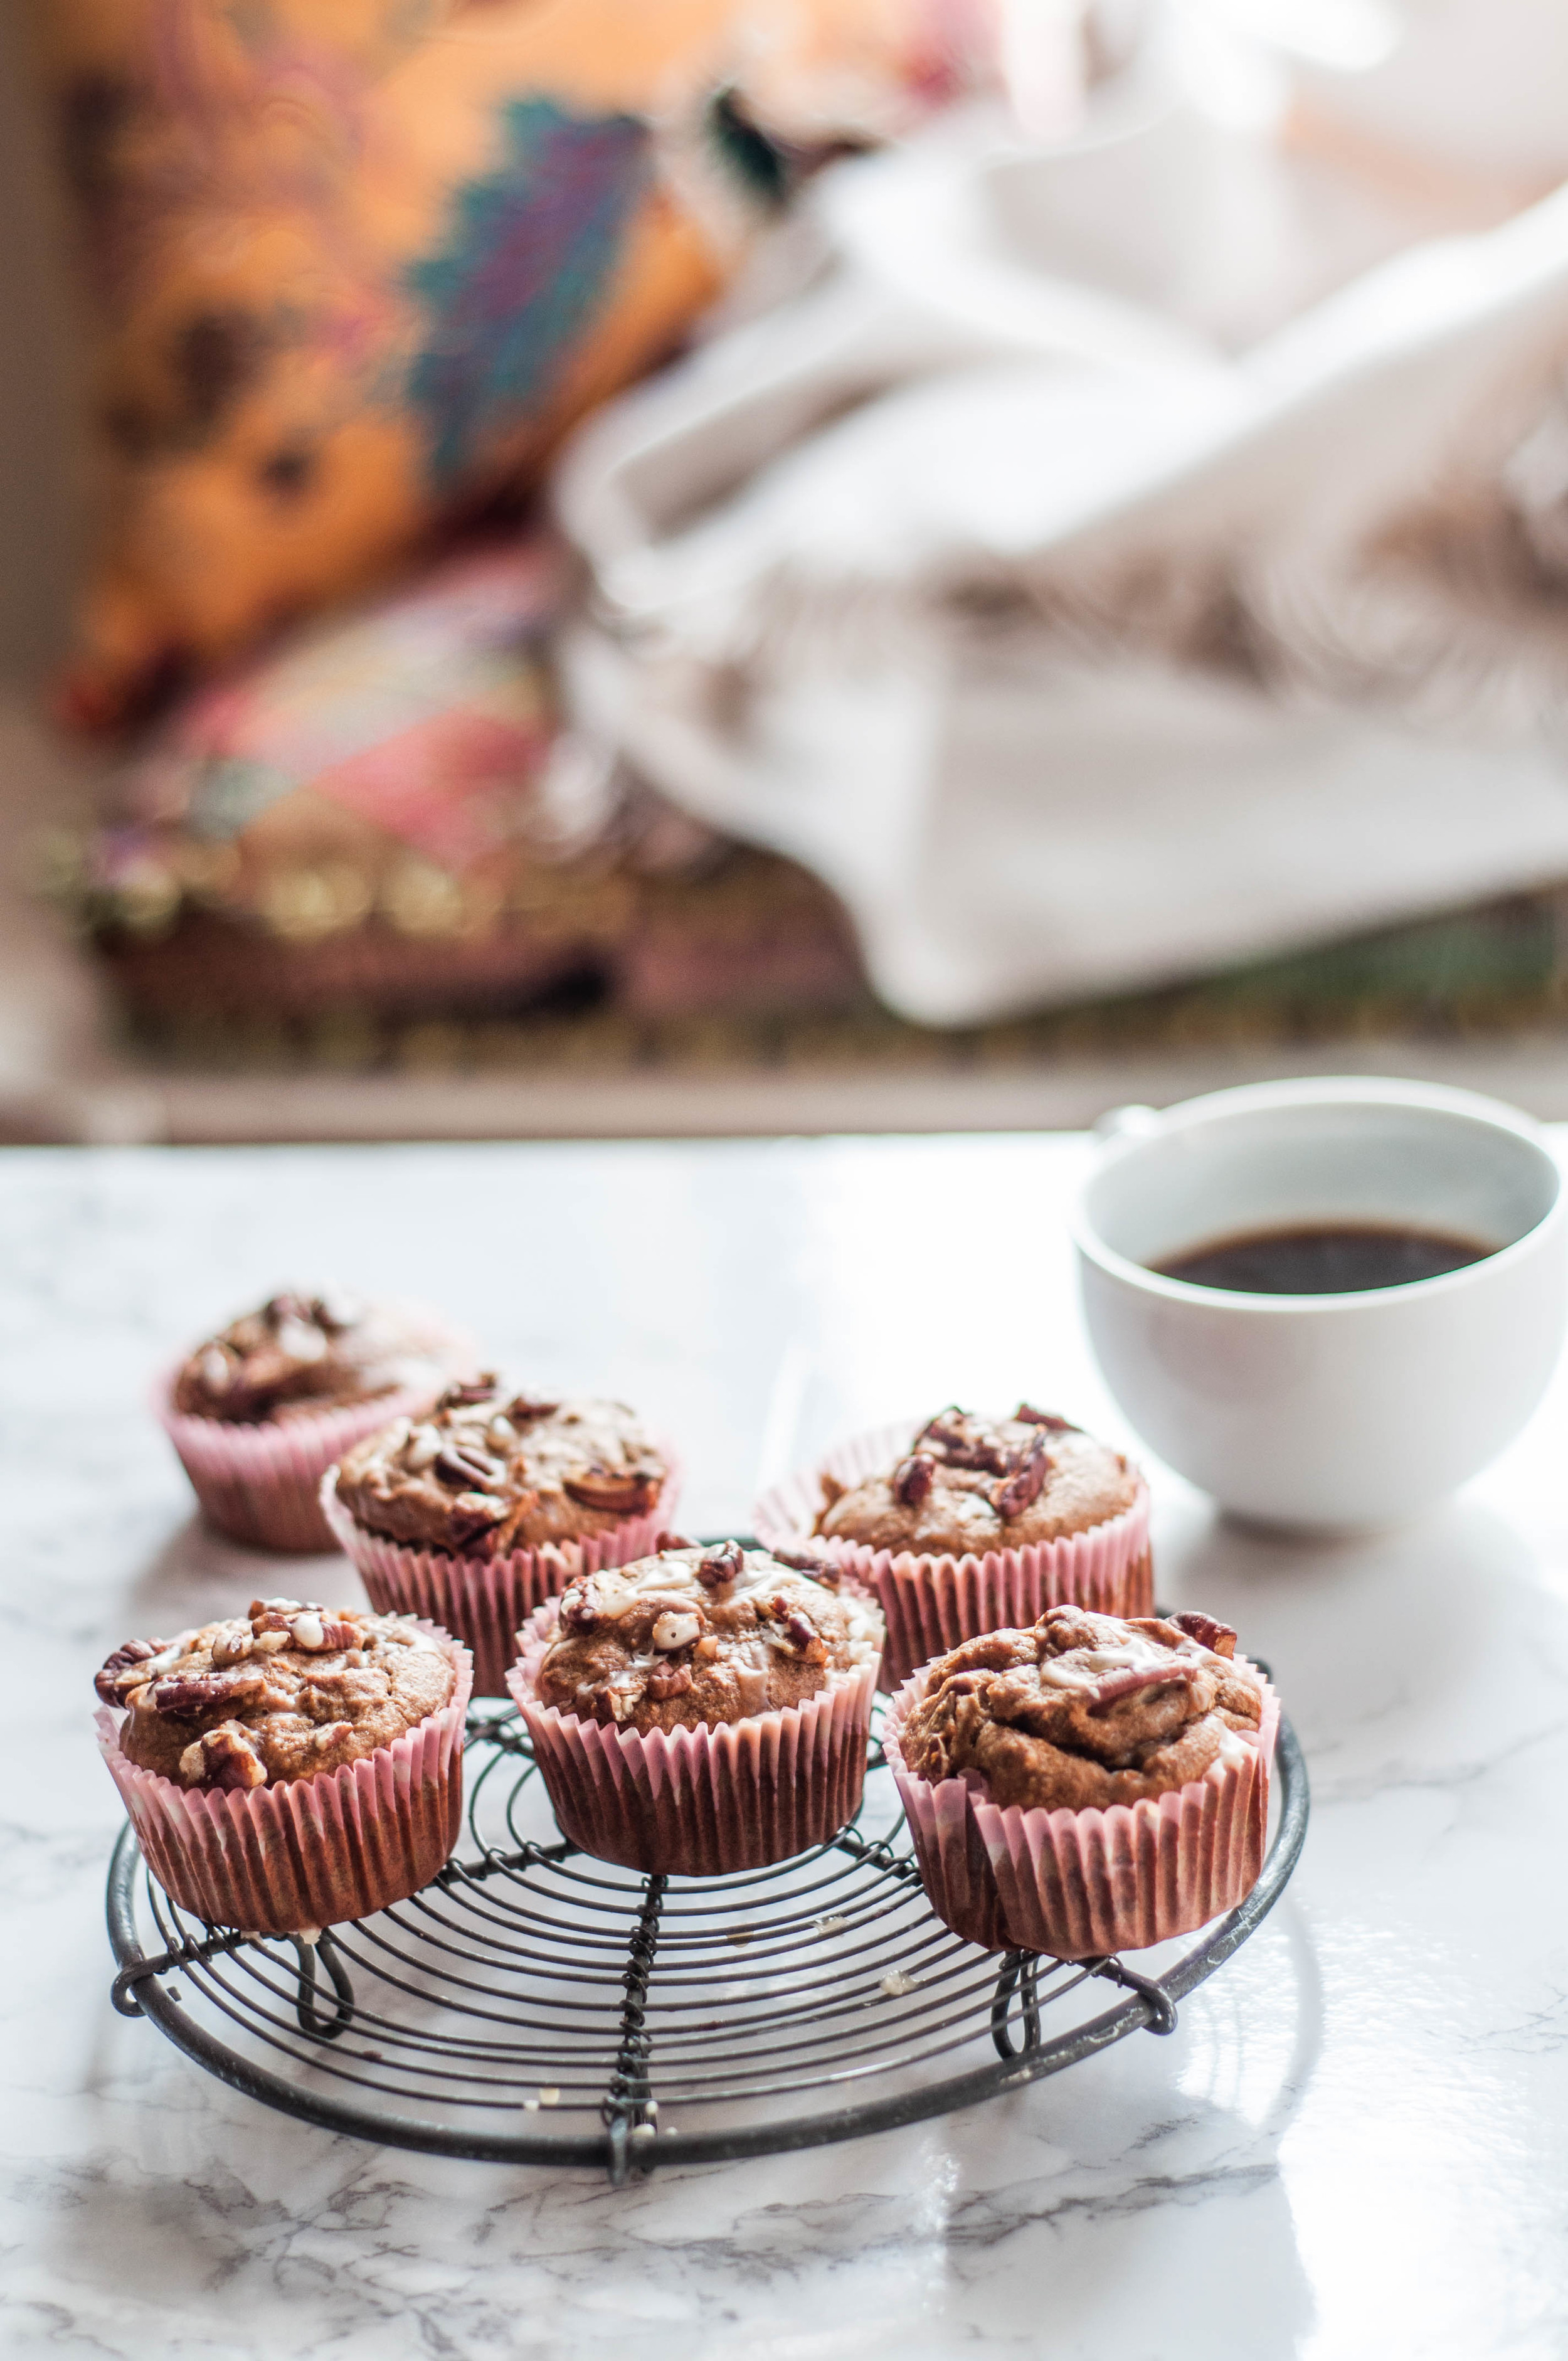 OAT ALMOND AND BANANA MUFFINS